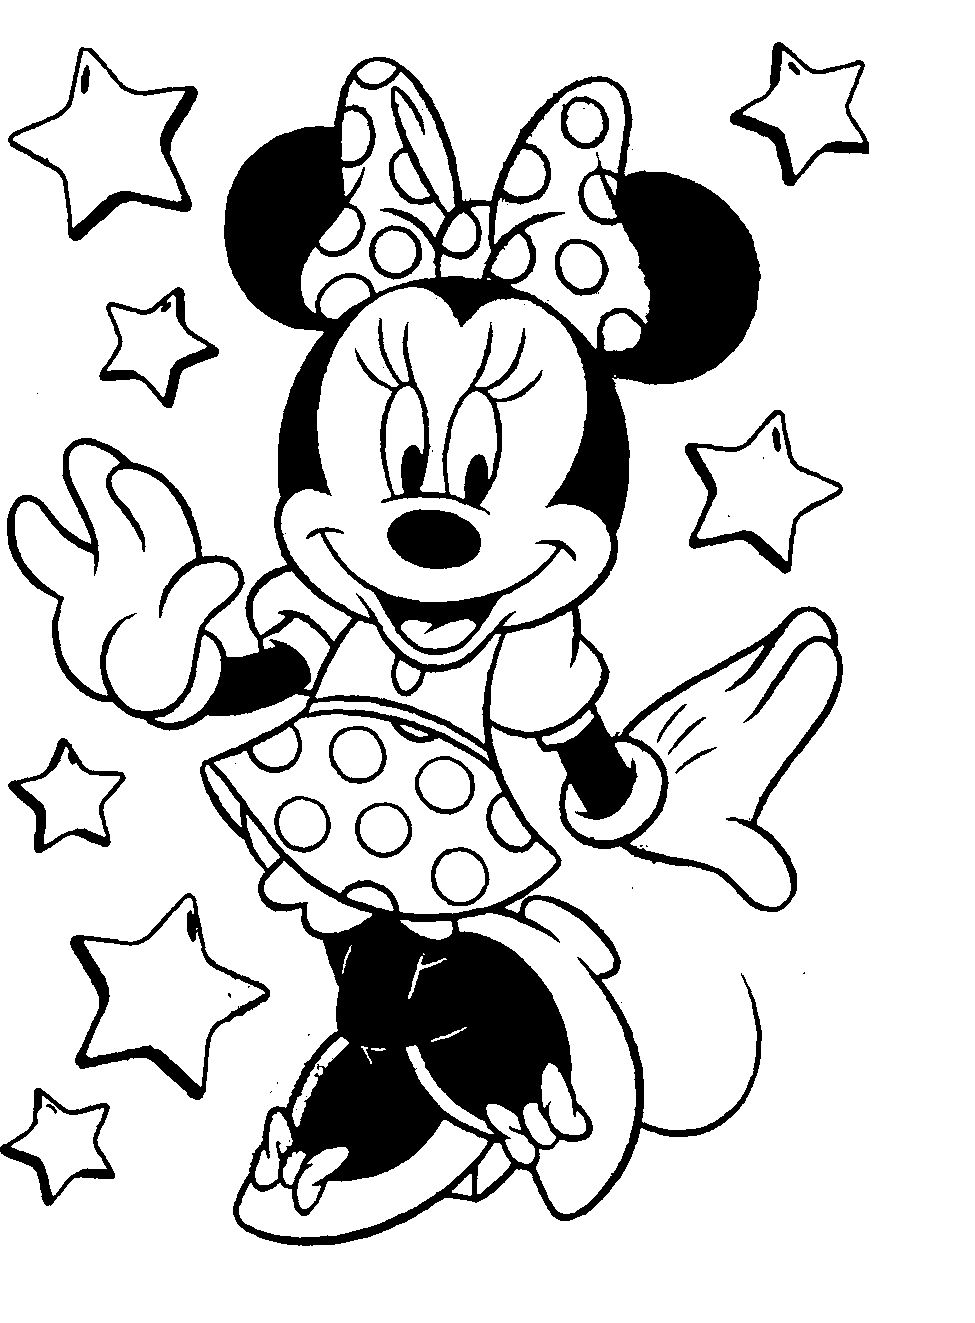 free minnie mouse coloring pages - Coloring Pages Mickey Mouse